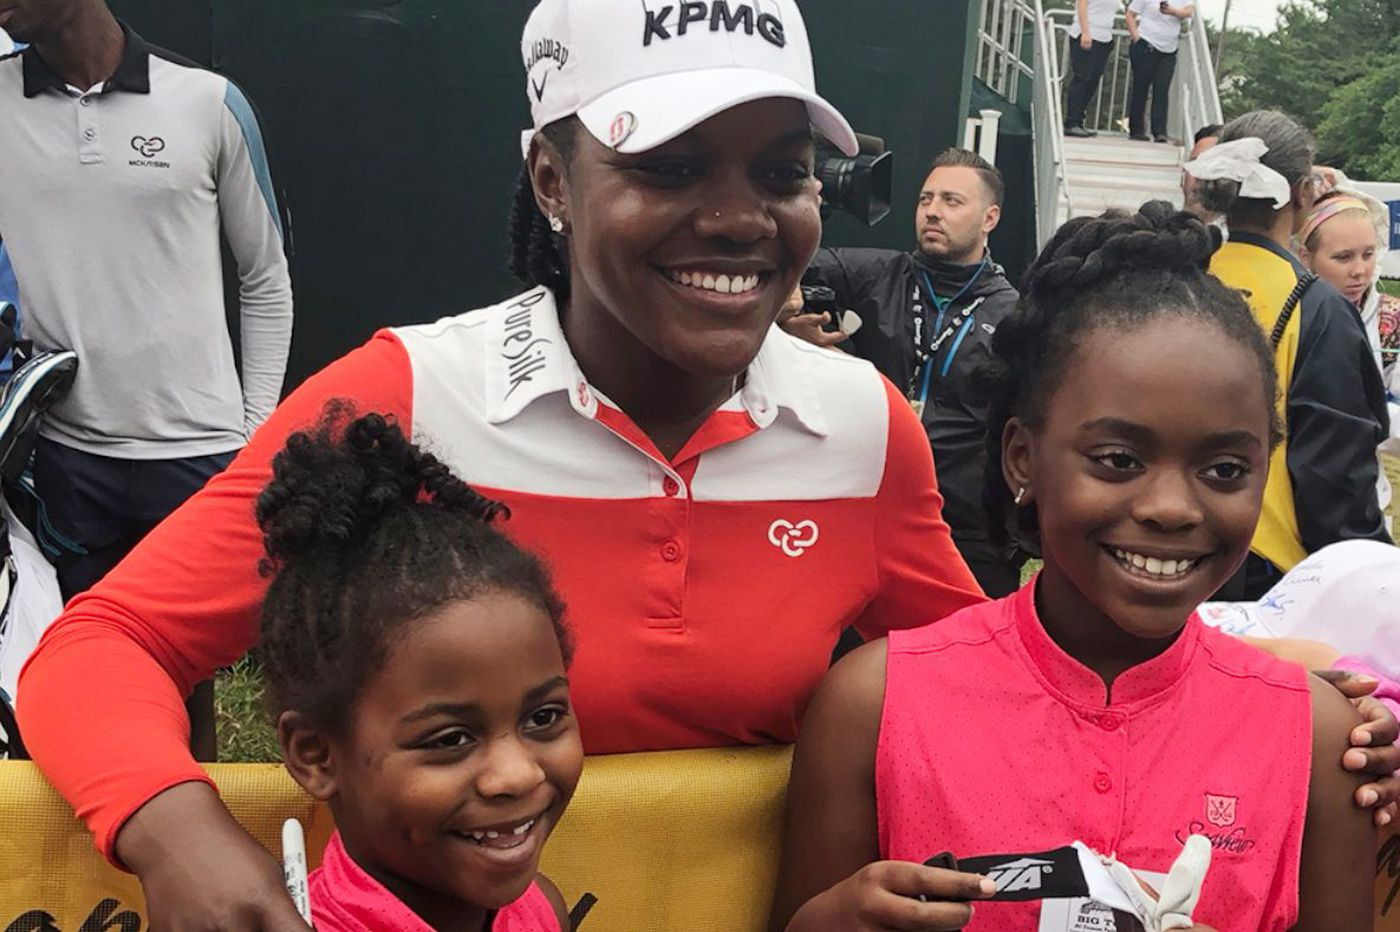 Mariah Stackhouse inspires at ShopRite LPGA Classic en route to career-best finish | Marcus Hayes